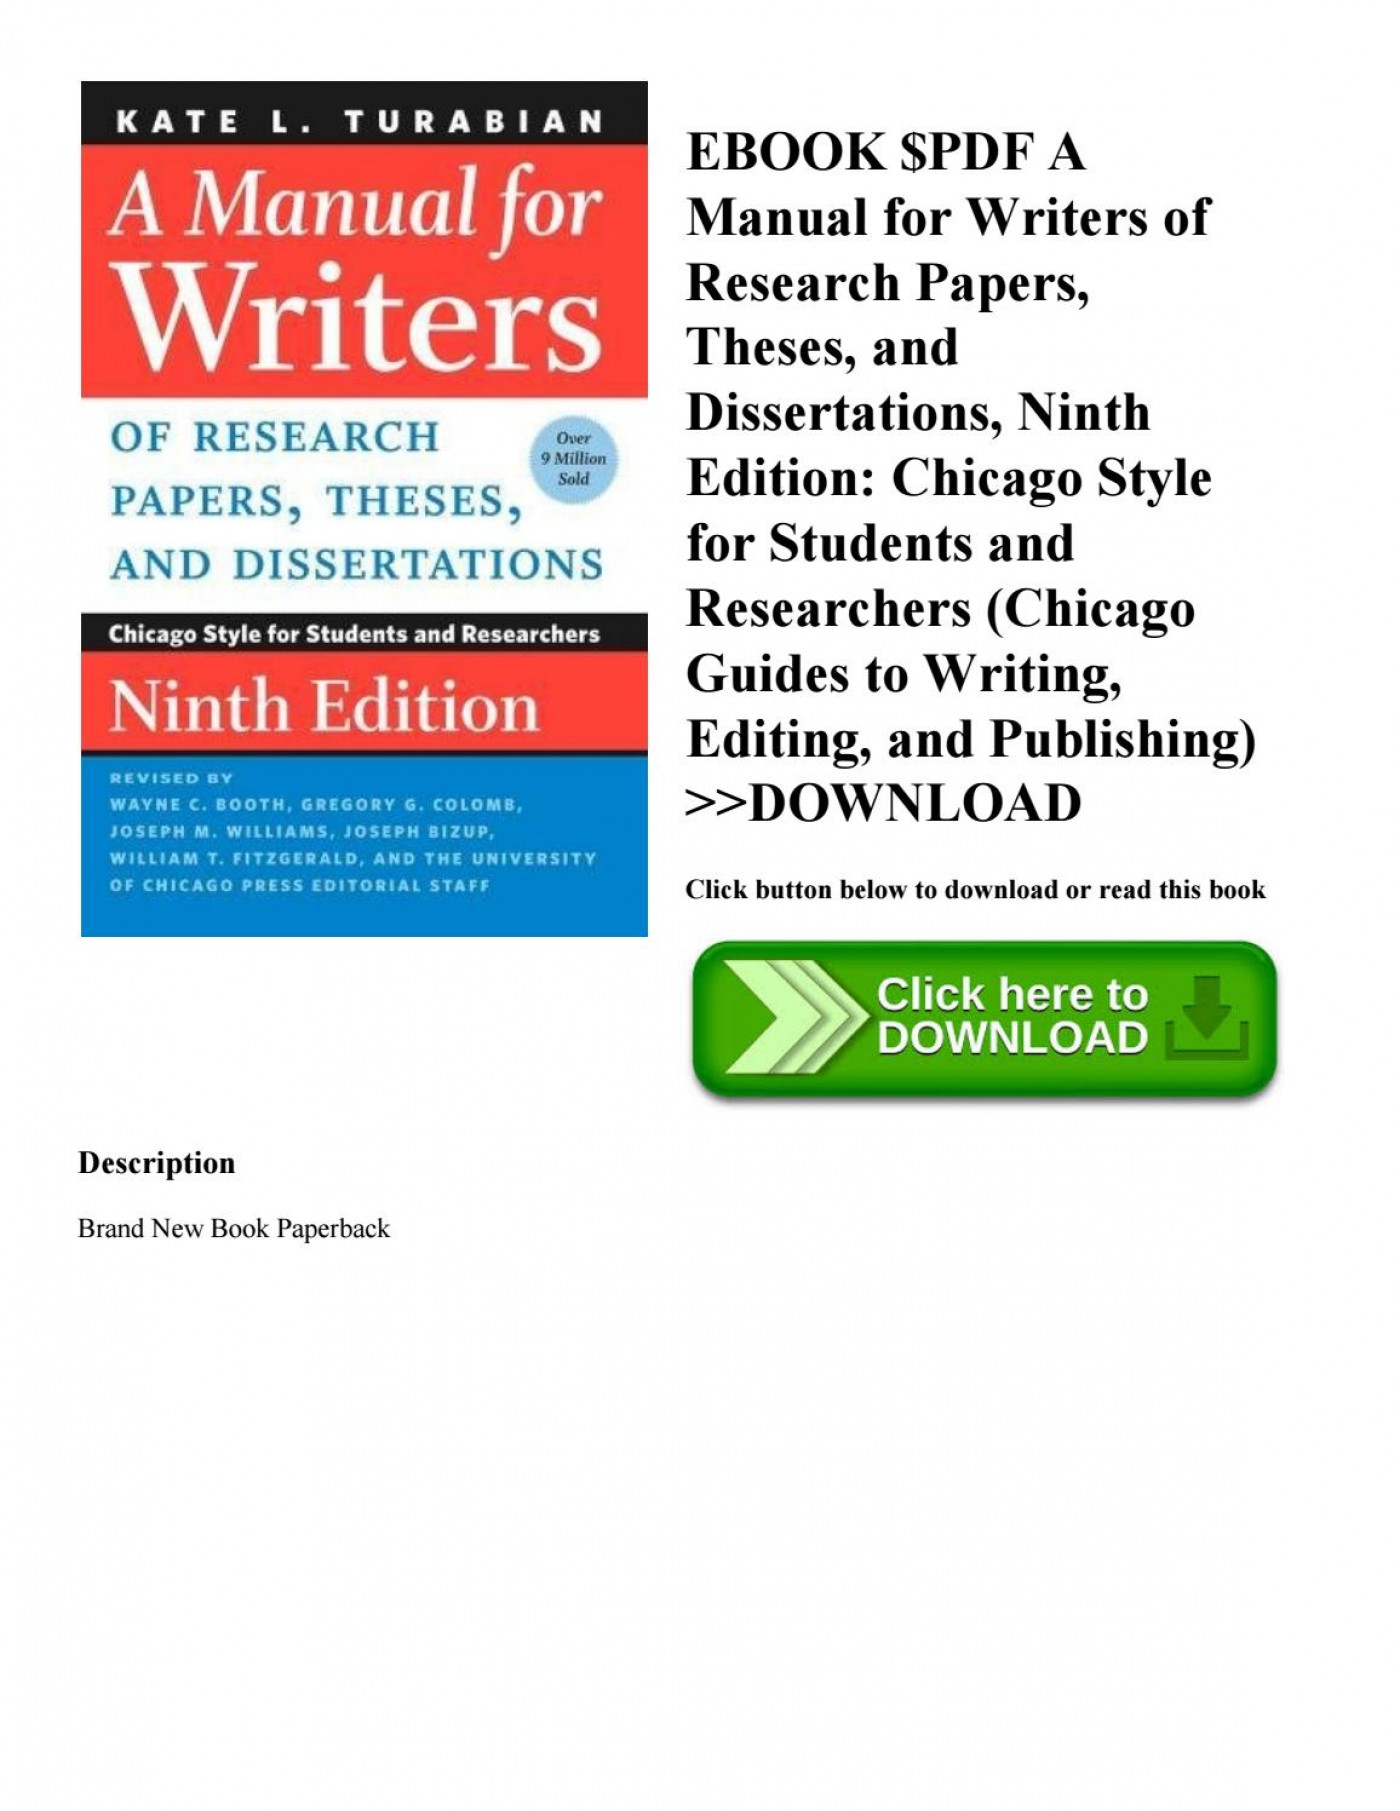 017 Manual For Writers Of Research Papers Theses And Dissertations Ebook Paper Page 1 Unbelievable A 1400